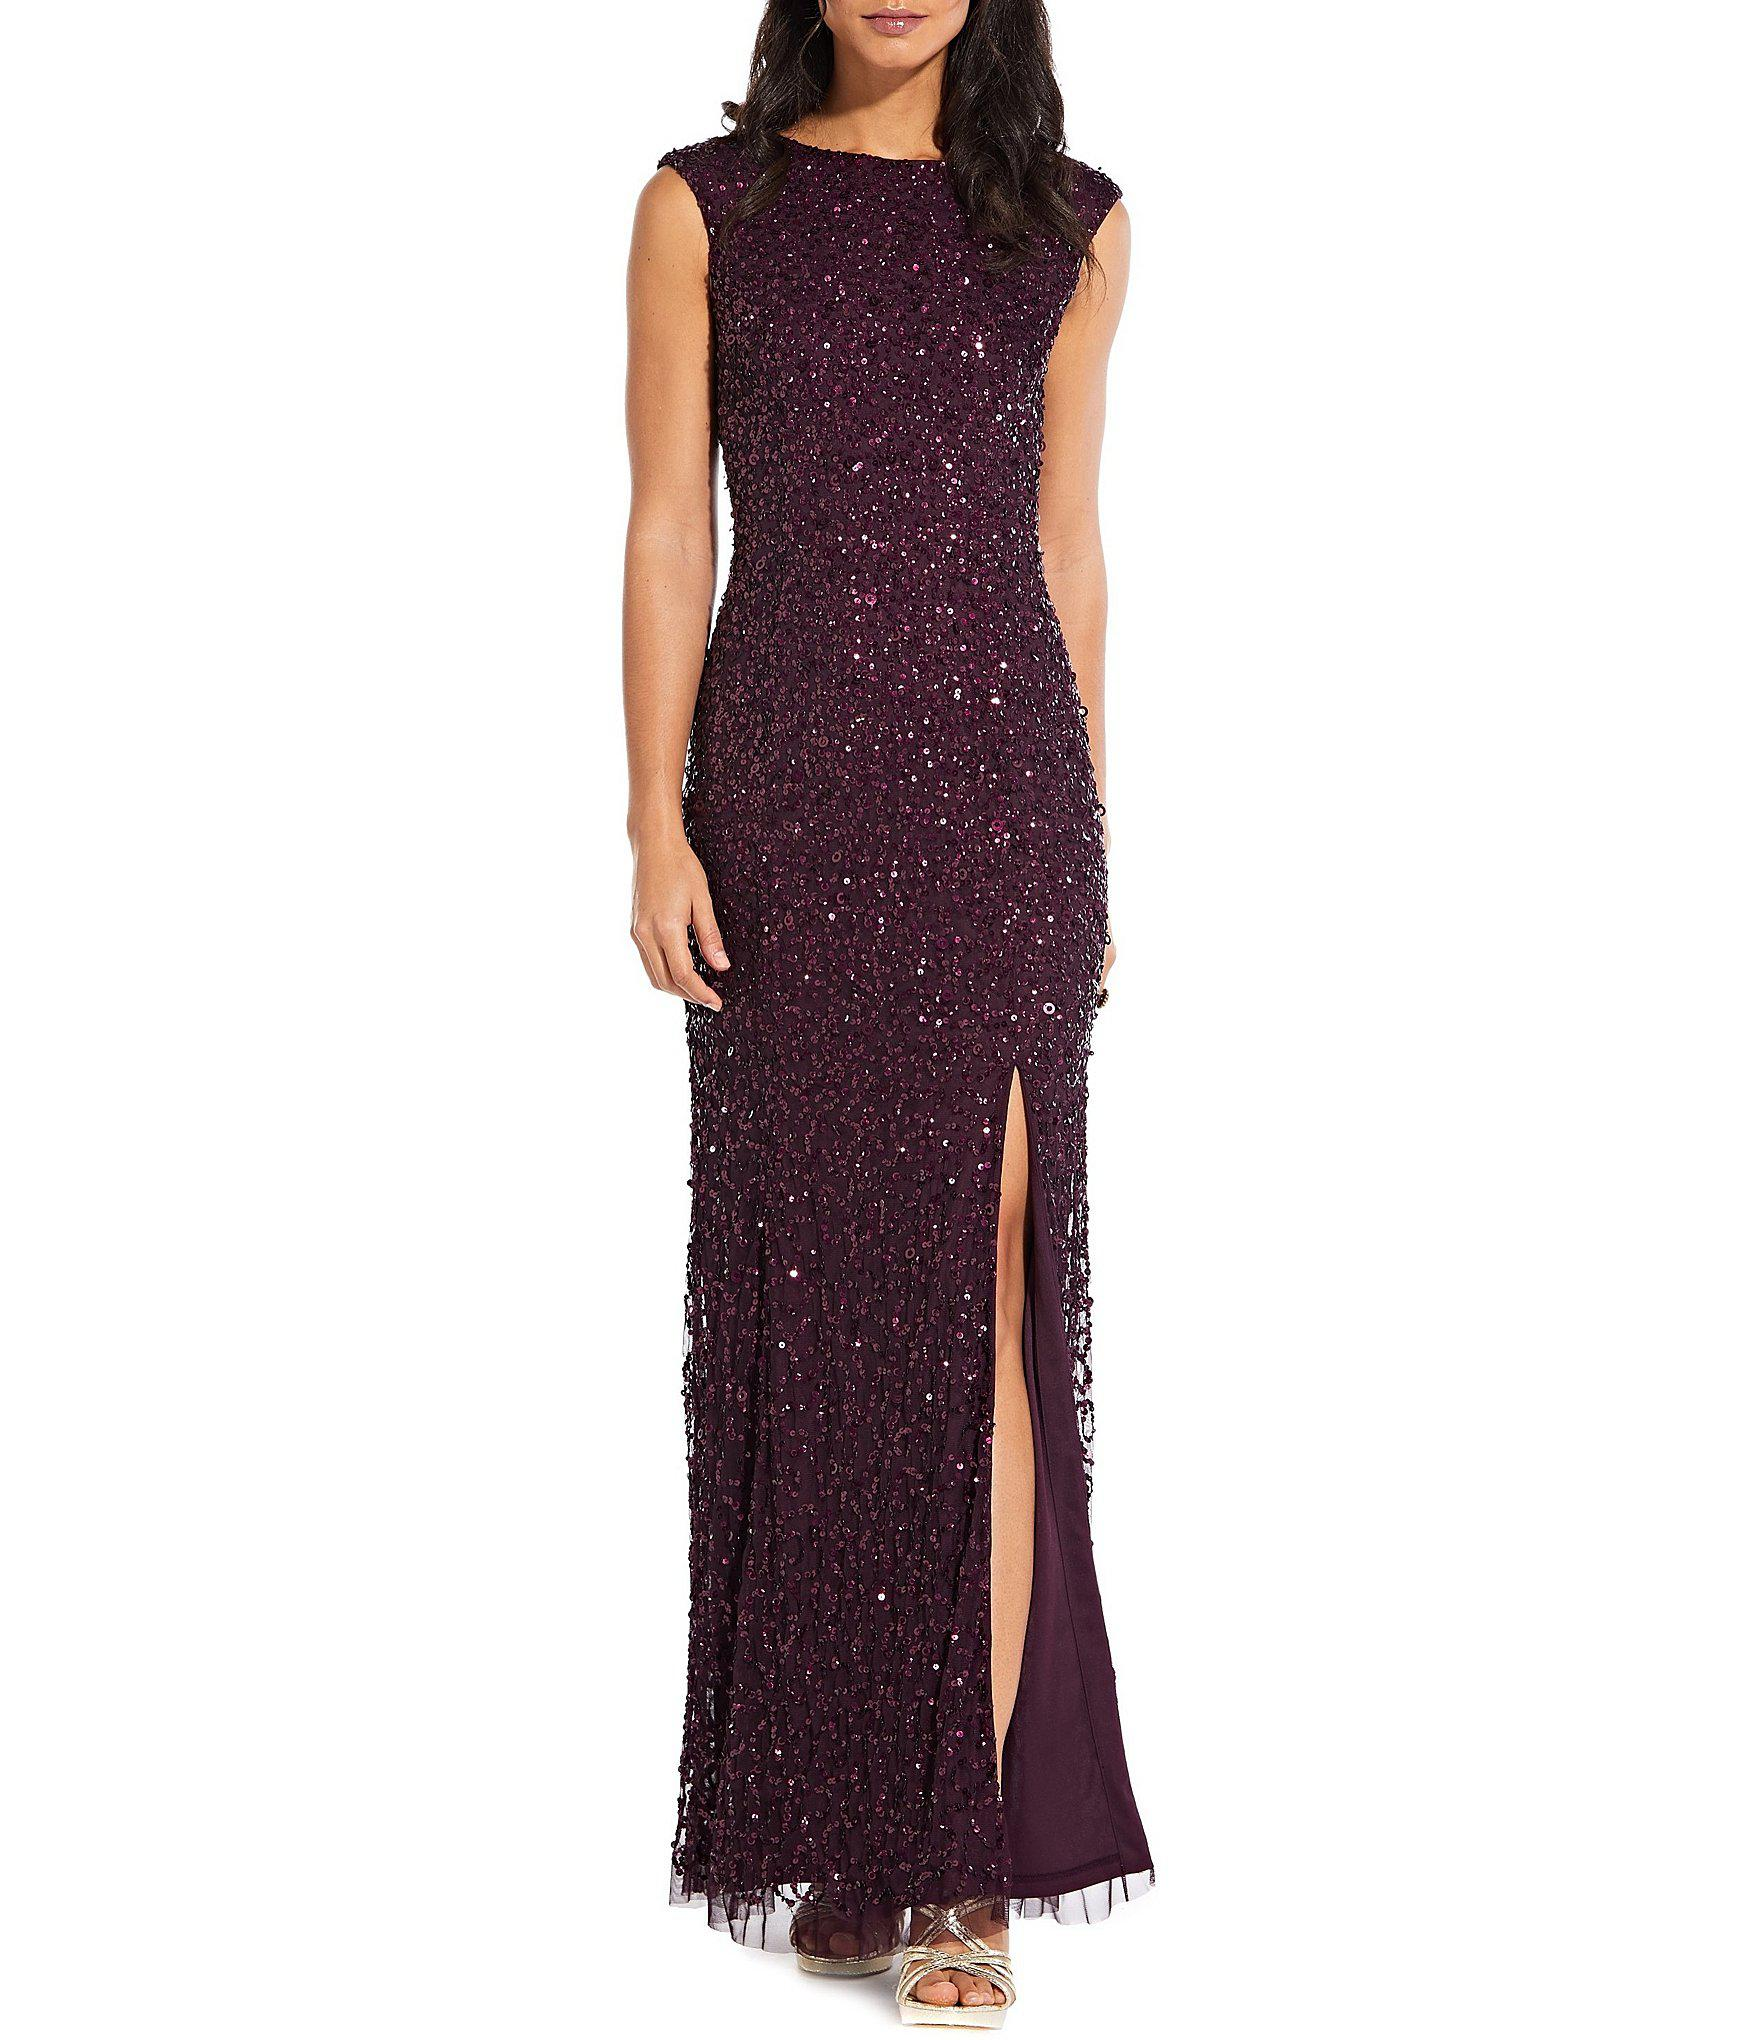 9d15d12faa3 Lyst - Adrianna Papell Sequin Cap Sleeve Side Slit Gown in Purple